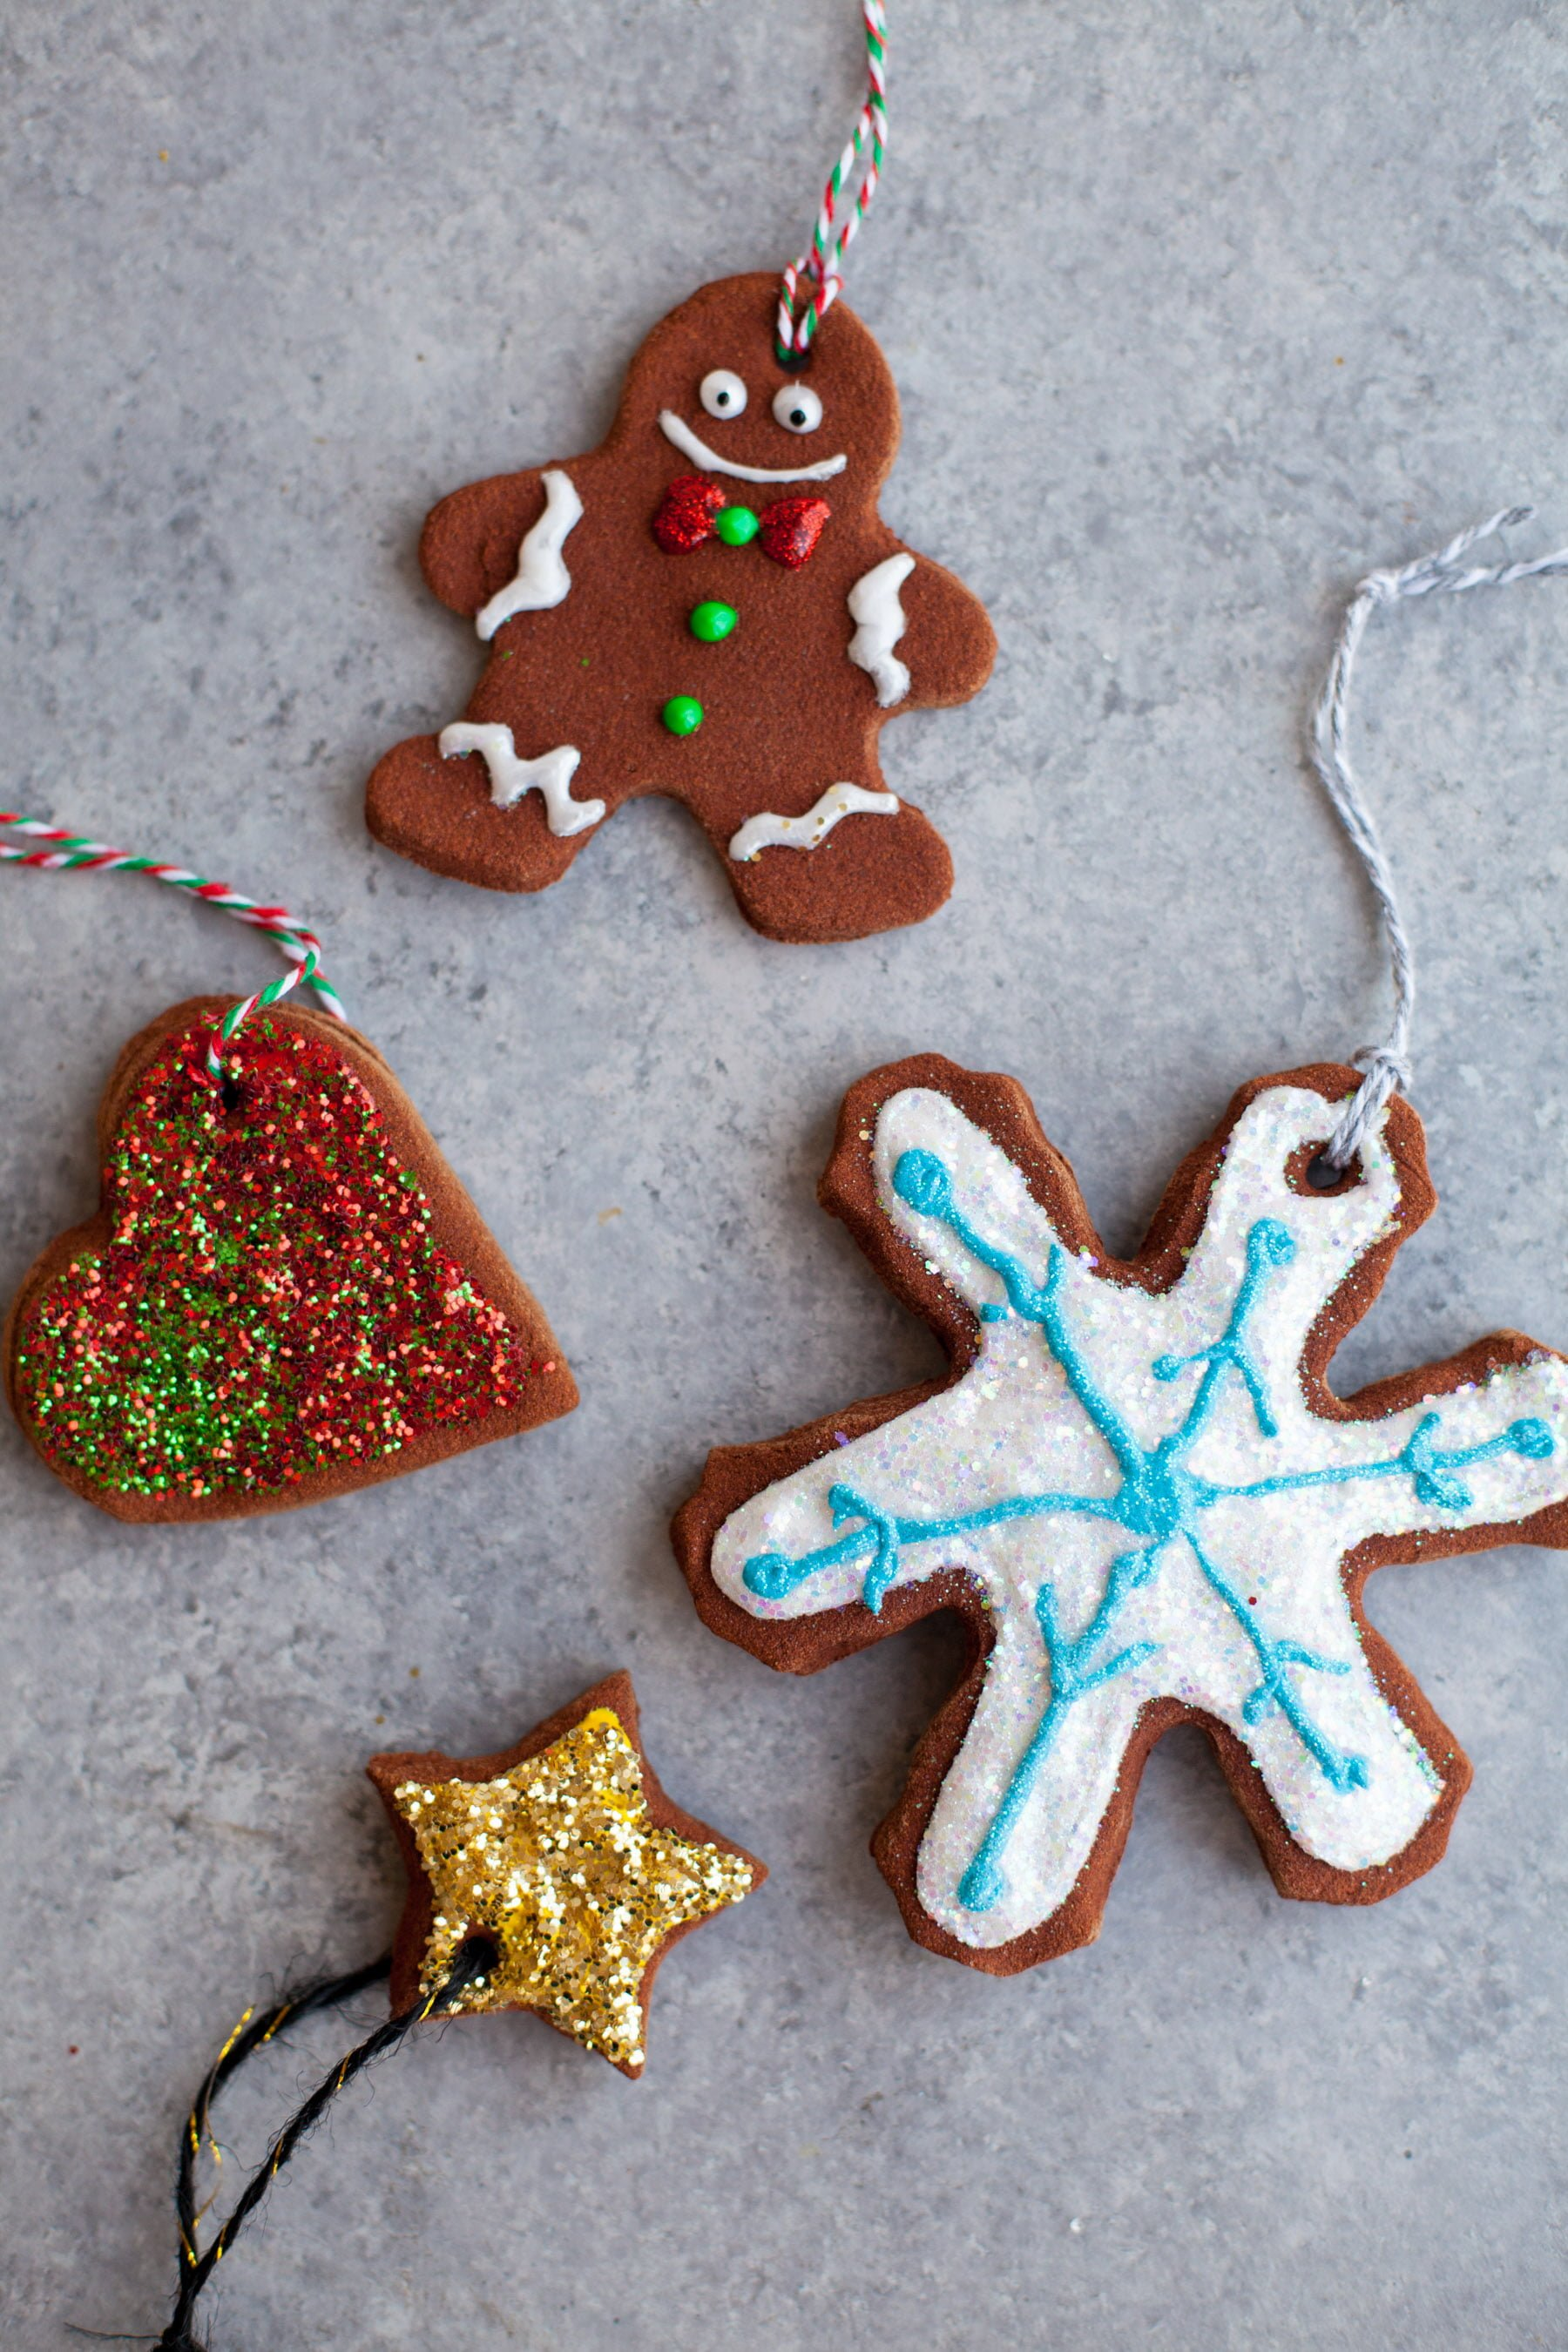 homemade cinnamon ornaments homemade cinnamon ornaments - Gingerbread Christmas Decorations